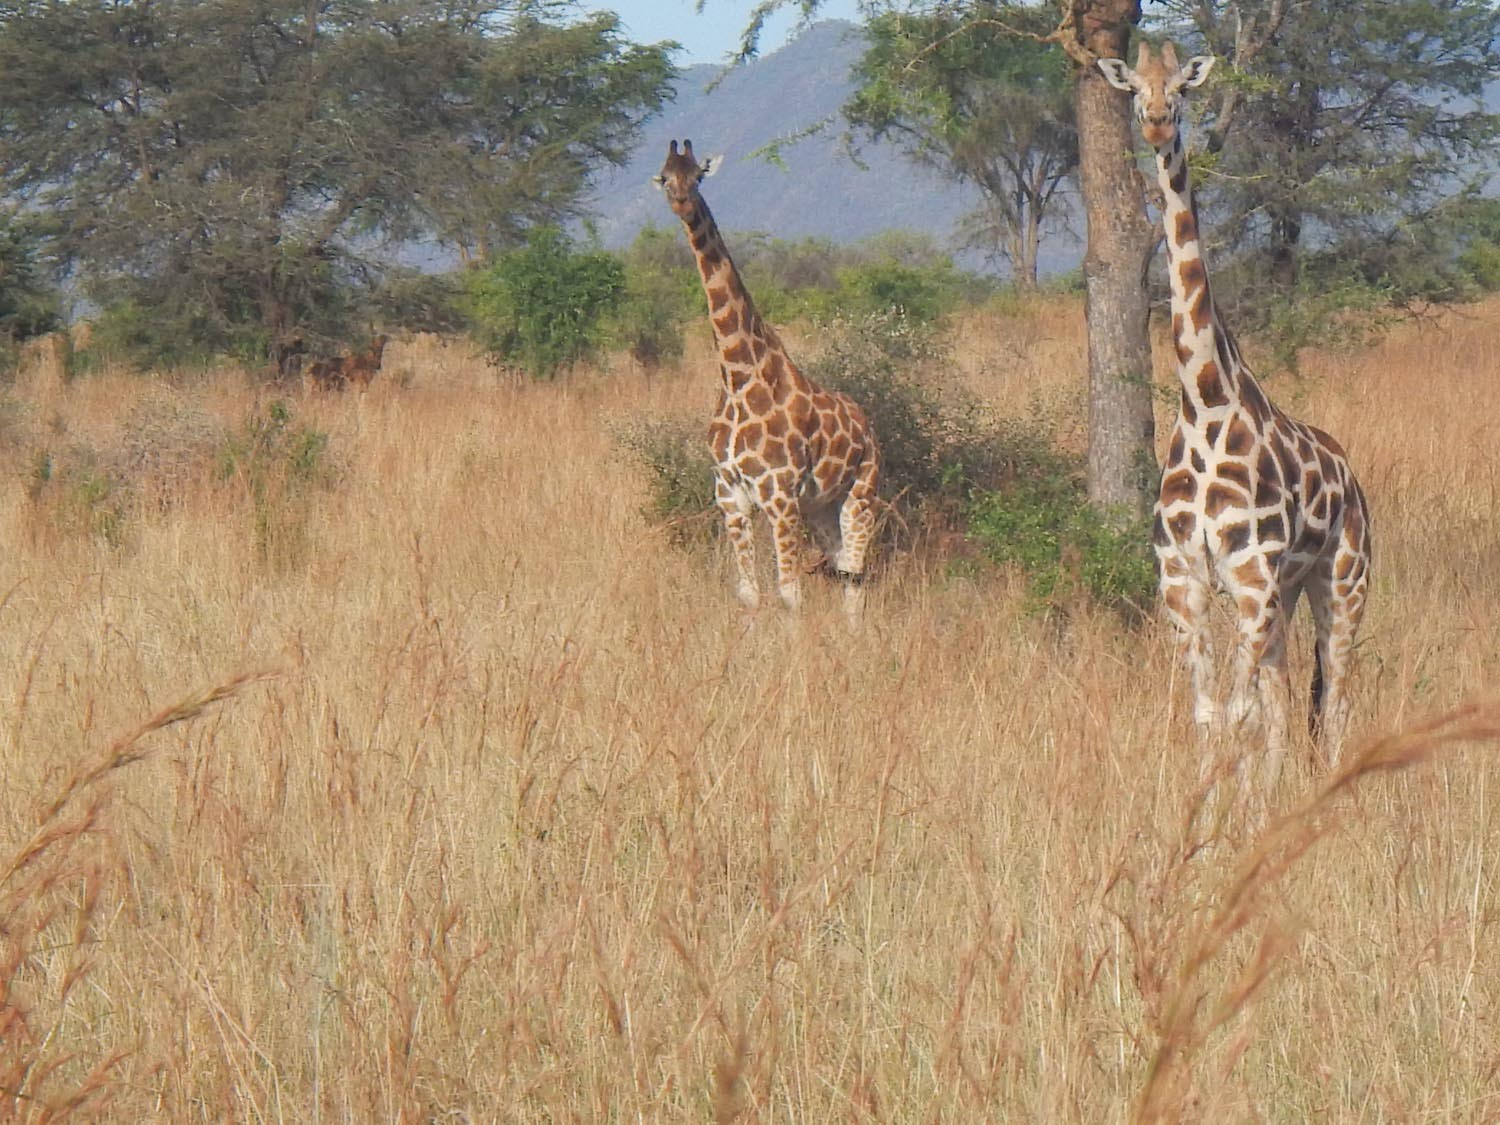 Giraffes gaze out of the Kidepo, savannah plains. Photo by Daudi Nana.